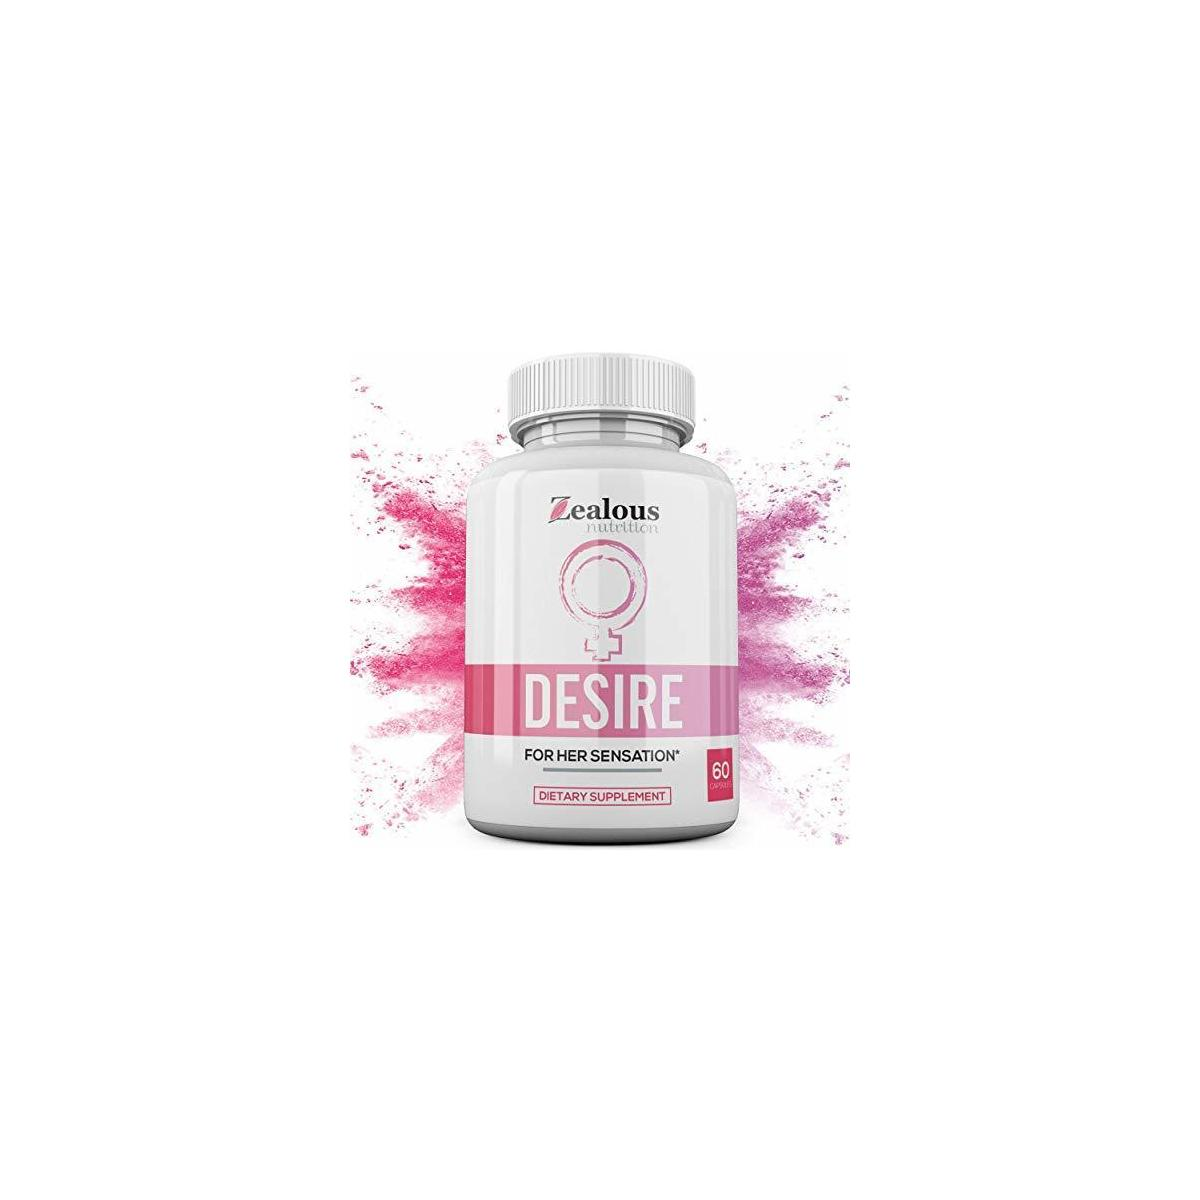 Desire Female Enhancement Pills – 5X Natural Mood Booster for Women - Increase Energy, Libido, Vitality, Reduce Dryness, Balance Hormones, PMS and Menopause Relief - 60 Caps